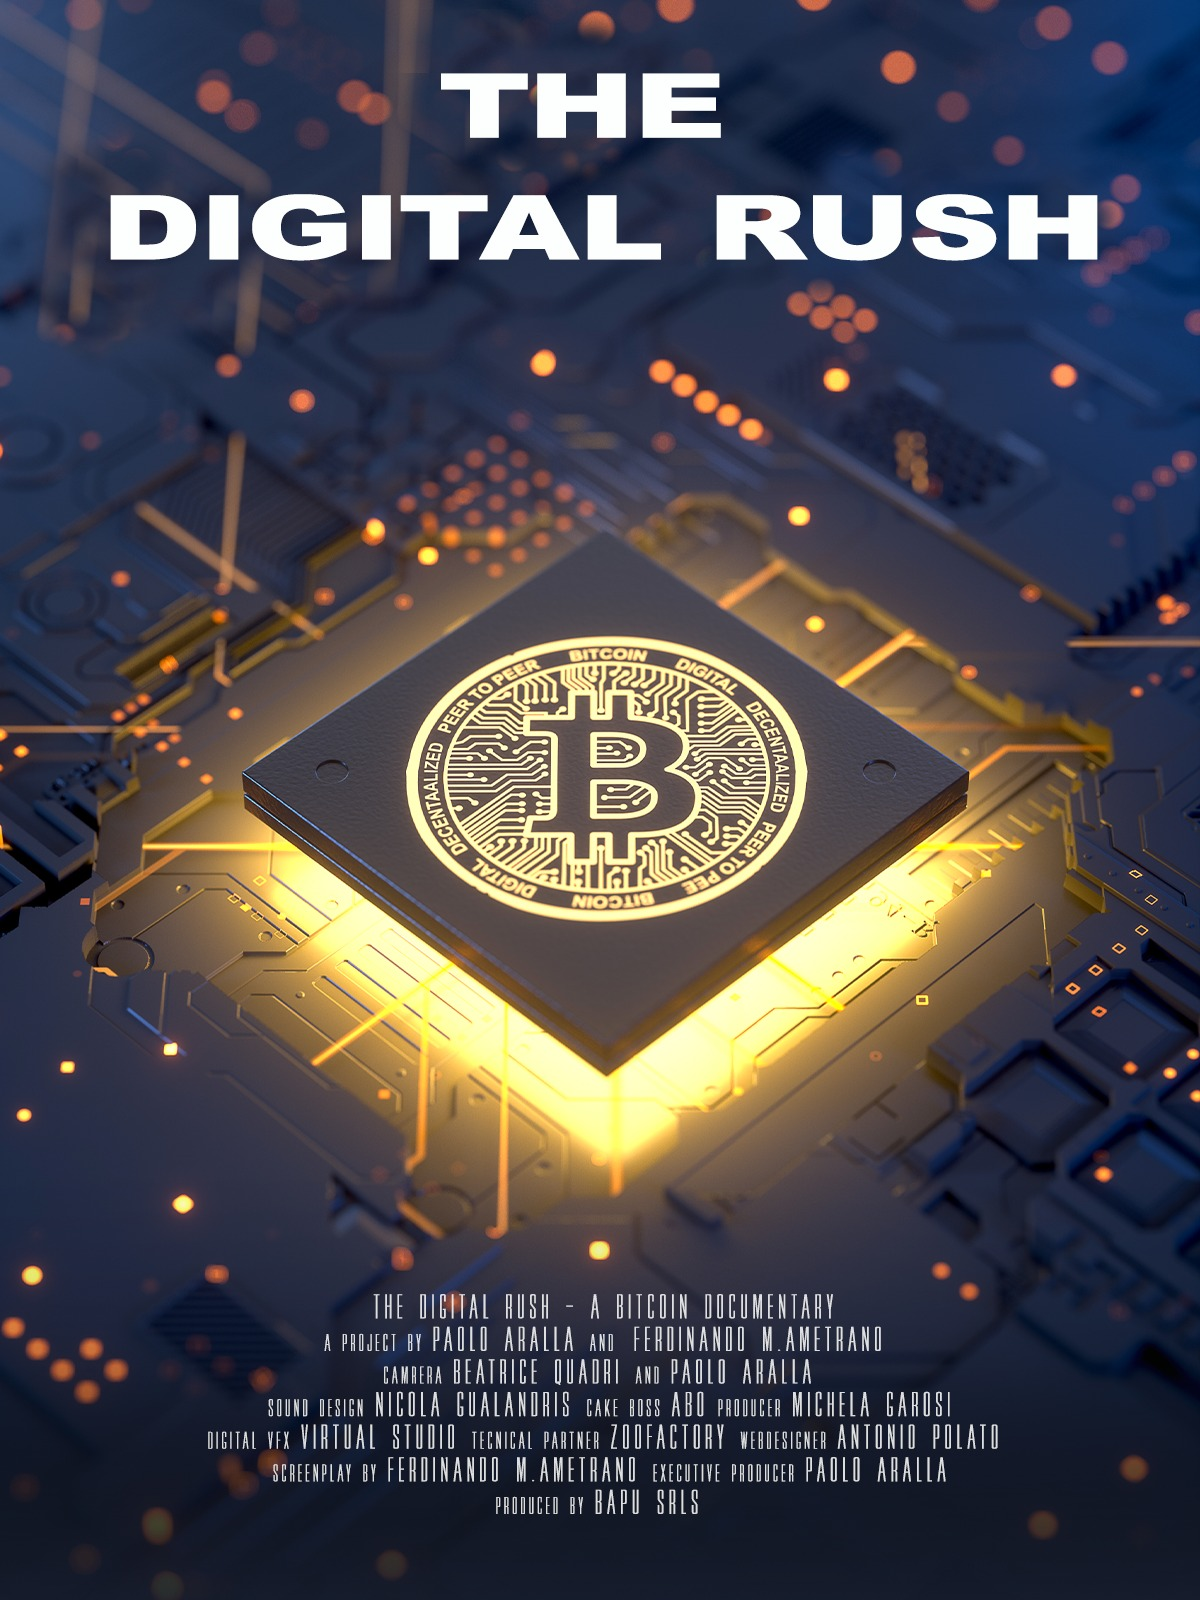 The Digital Rush - A Bitcoin documentary